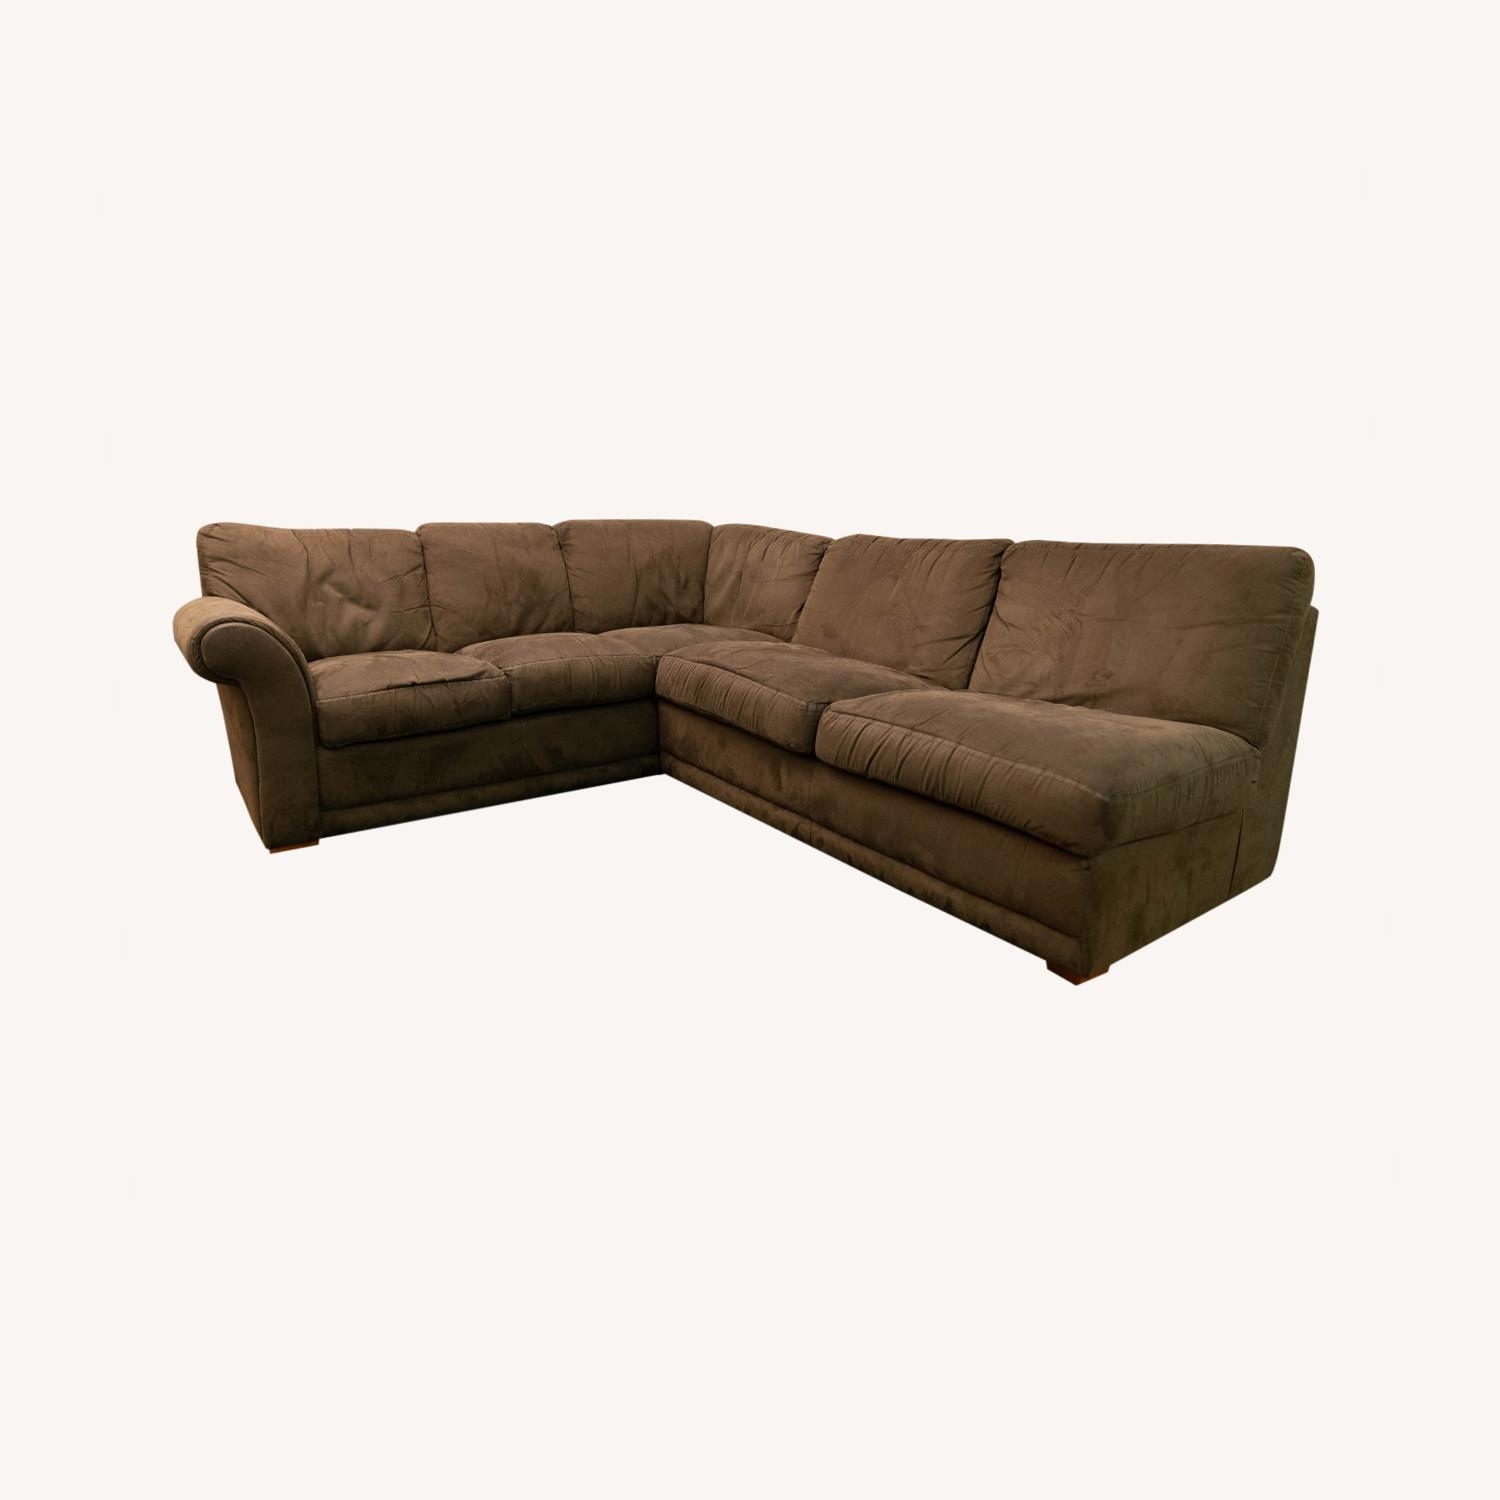 Super Comfortable Sectional Couch - image-0